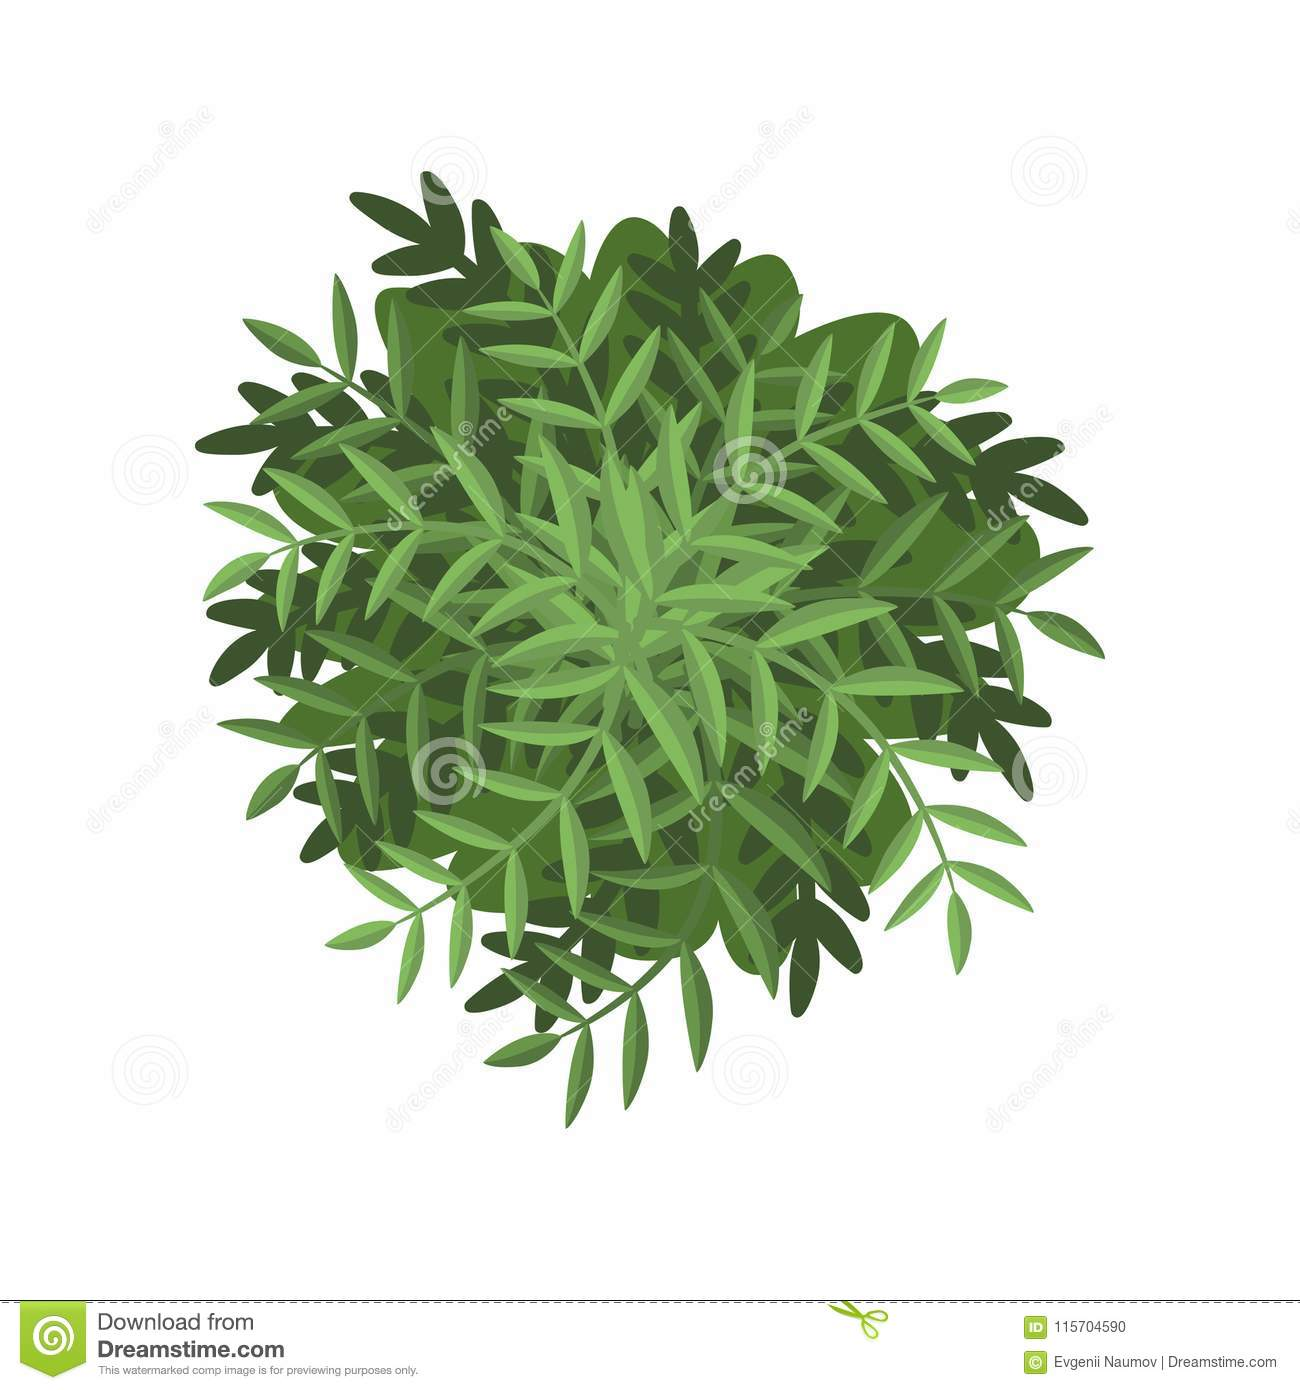 Download Green Bush Landscape Design Element Top View Vector Illustration On A White Background